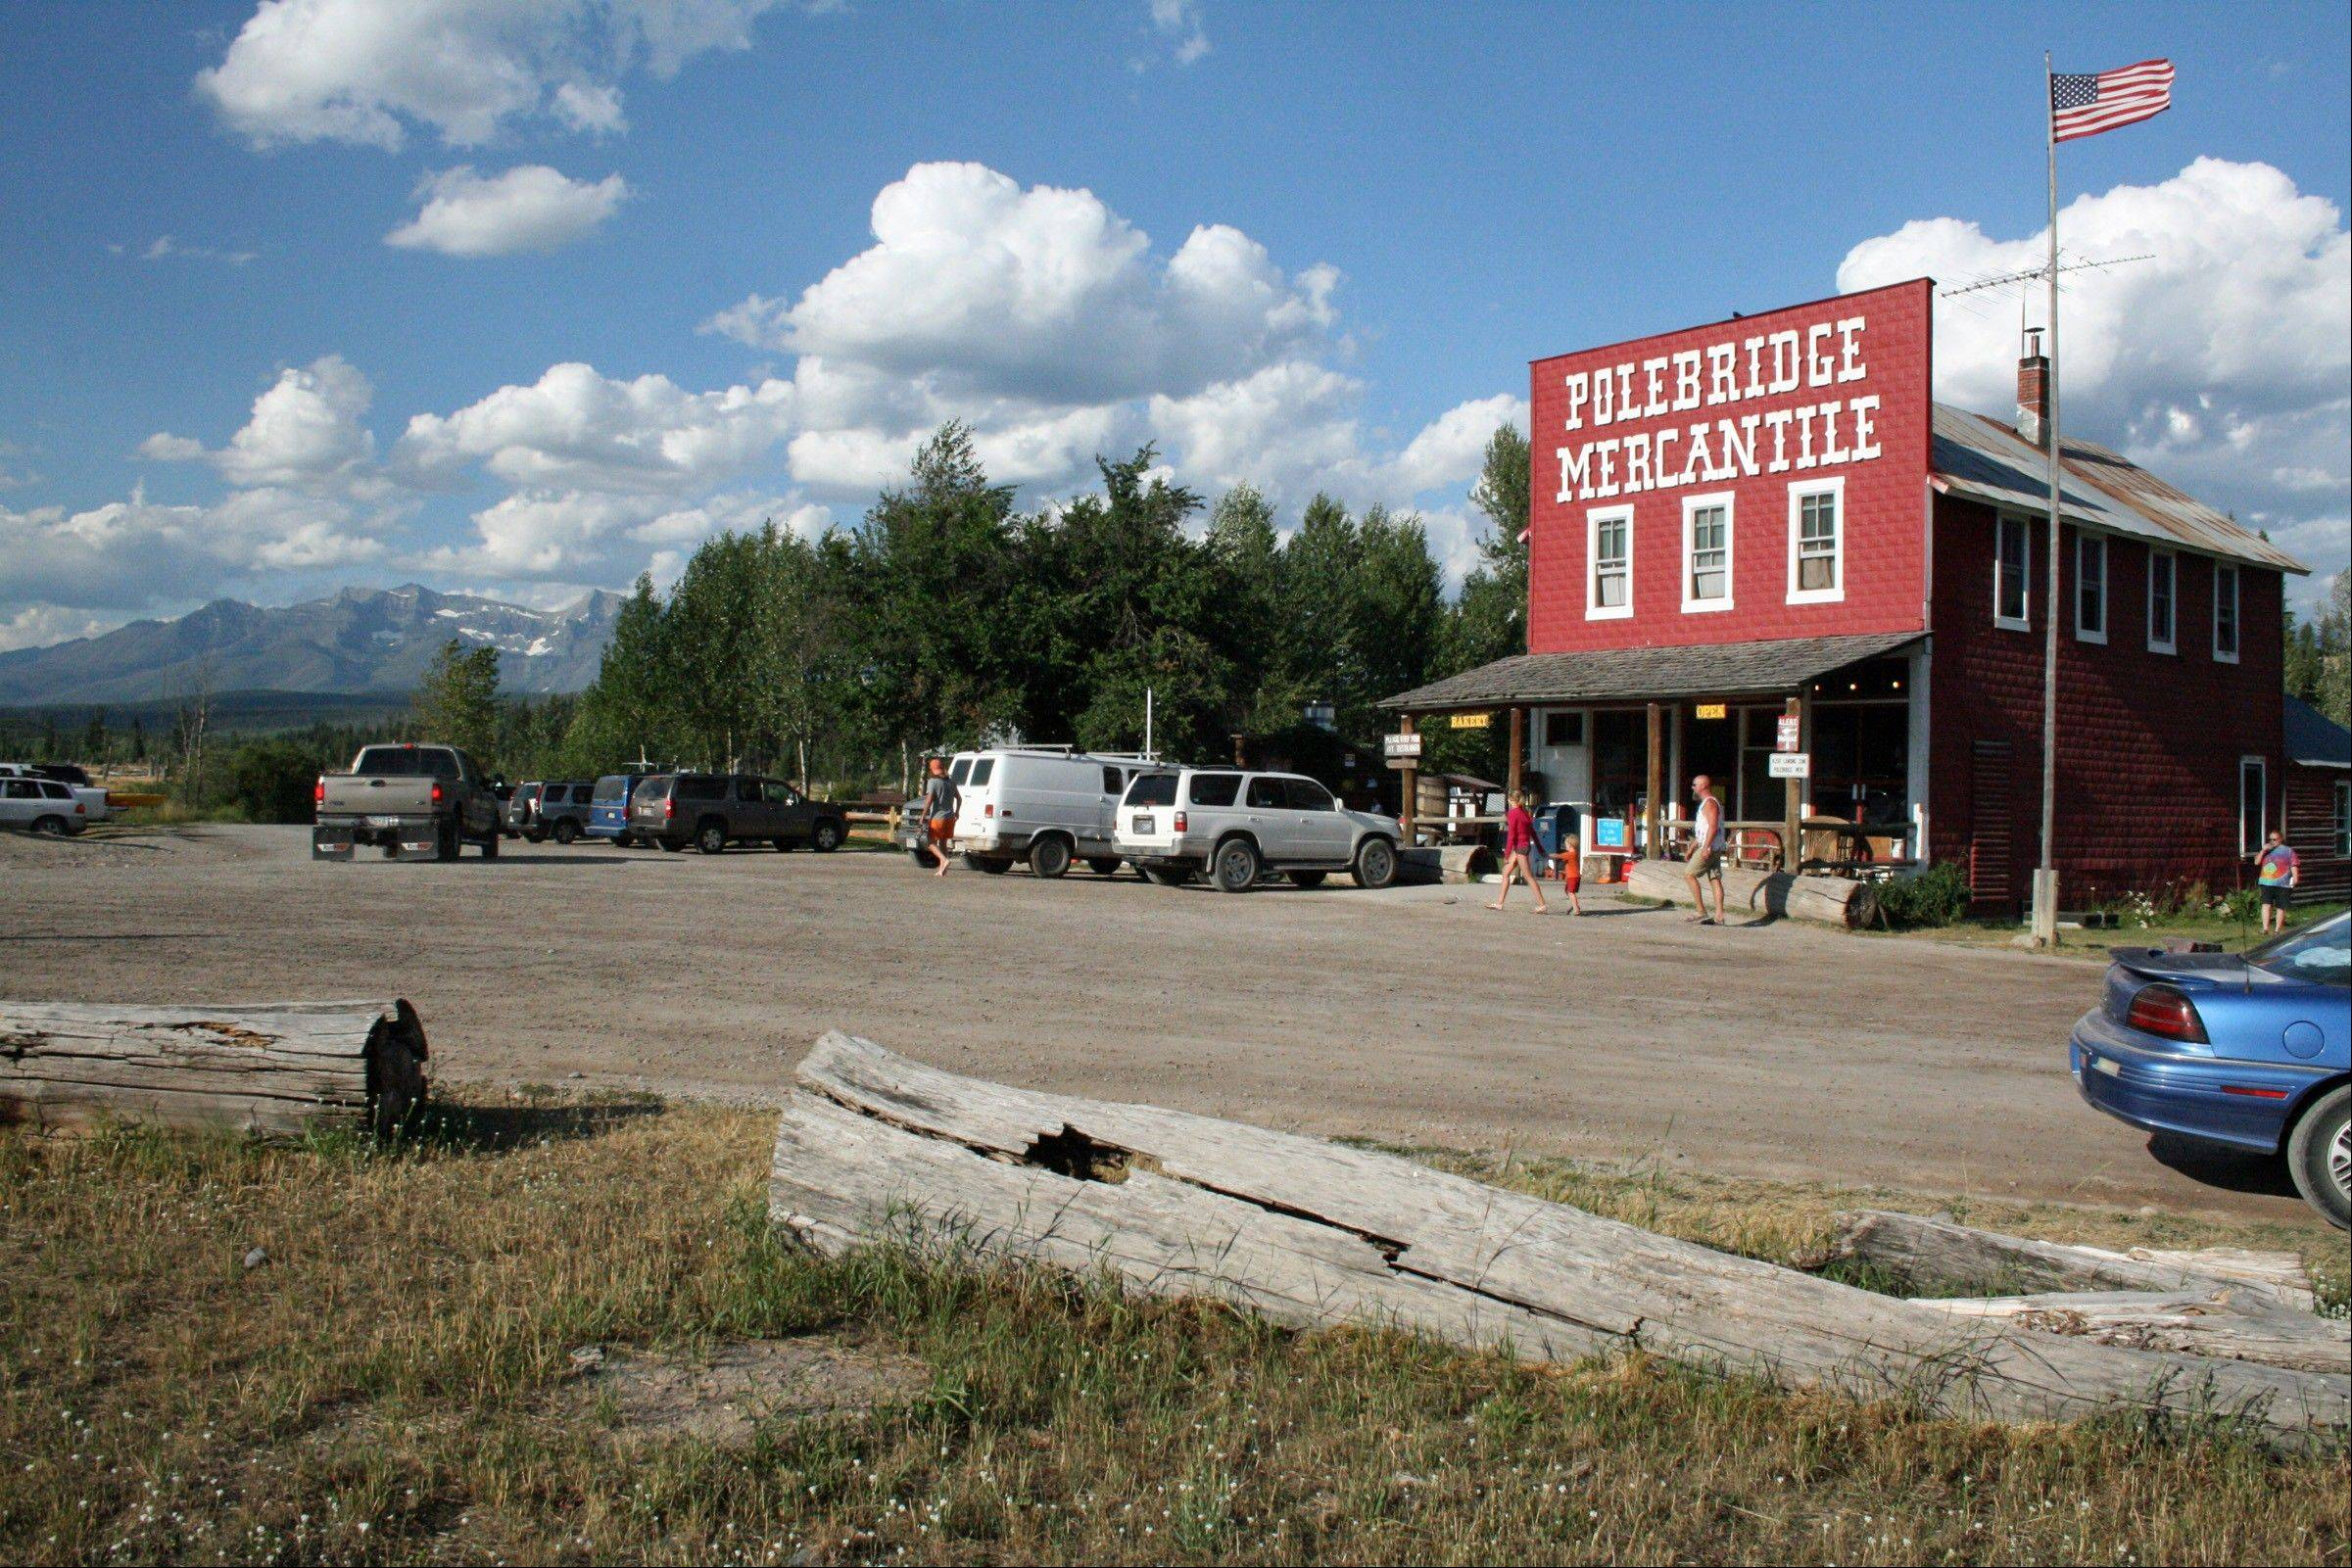 Polebridge Mercantile is a mile from the northwestern entrance to Glacier National Park.